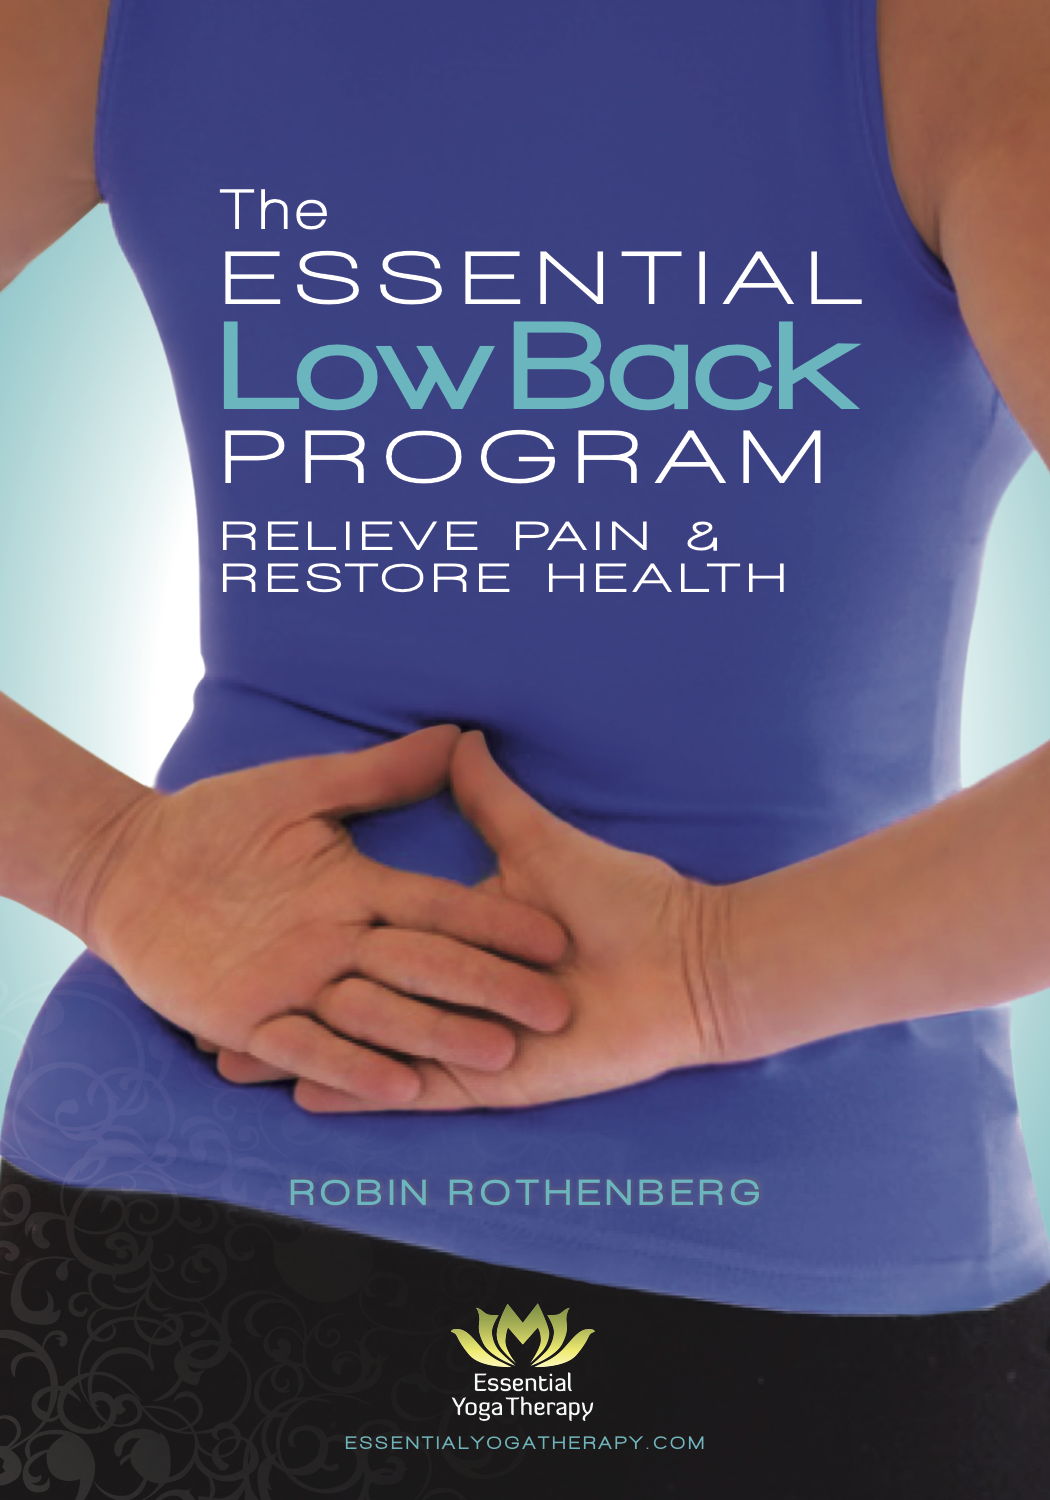 The Essential Low Back Program Essential Yoga Therapy